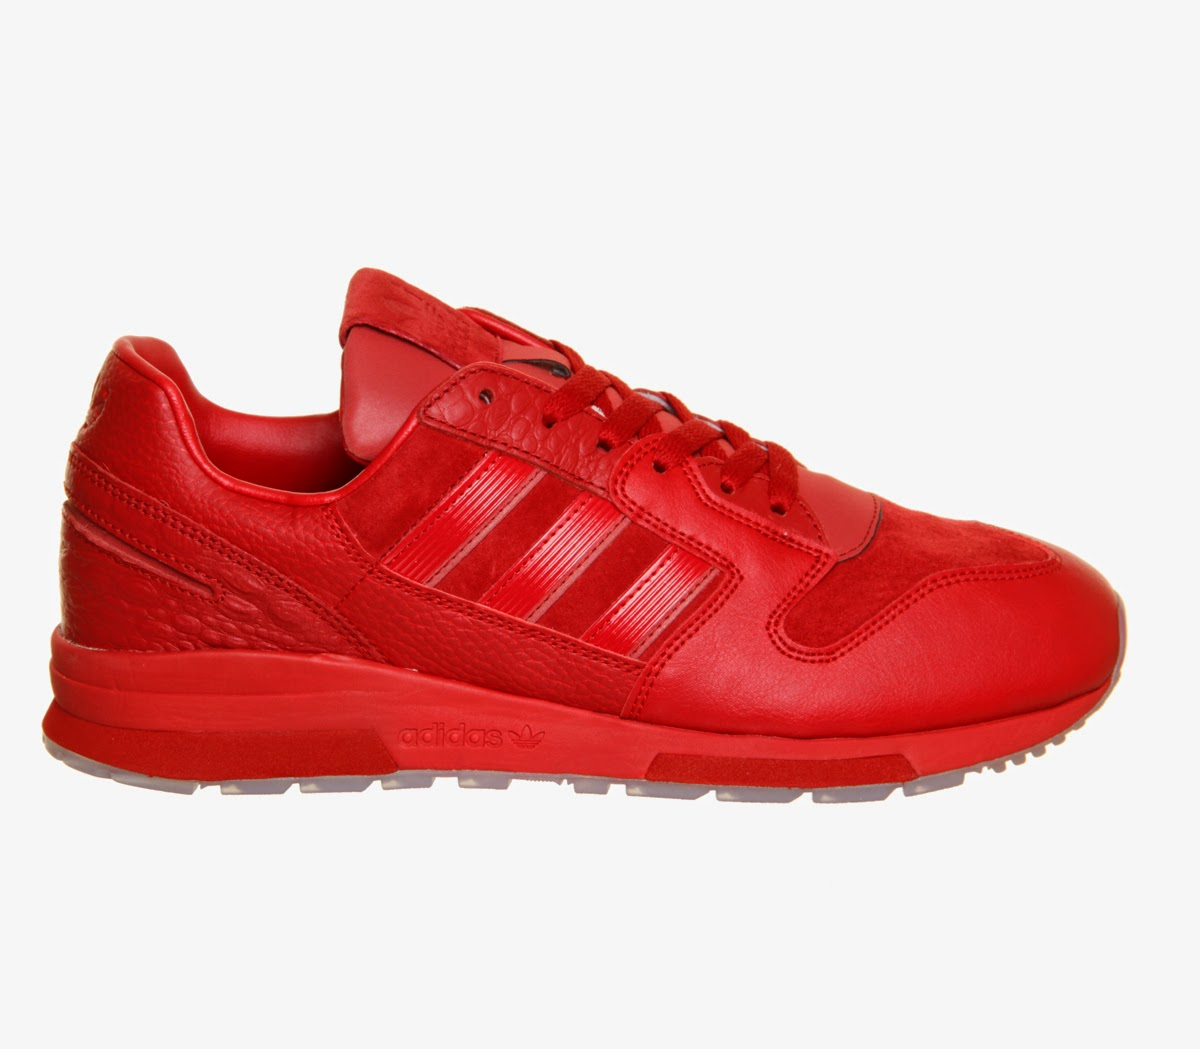 hot sale online 38b3e 2ebe6 Adidas ZX420 X Offspring - Mono Luxe Pack - Offspring Exclusive